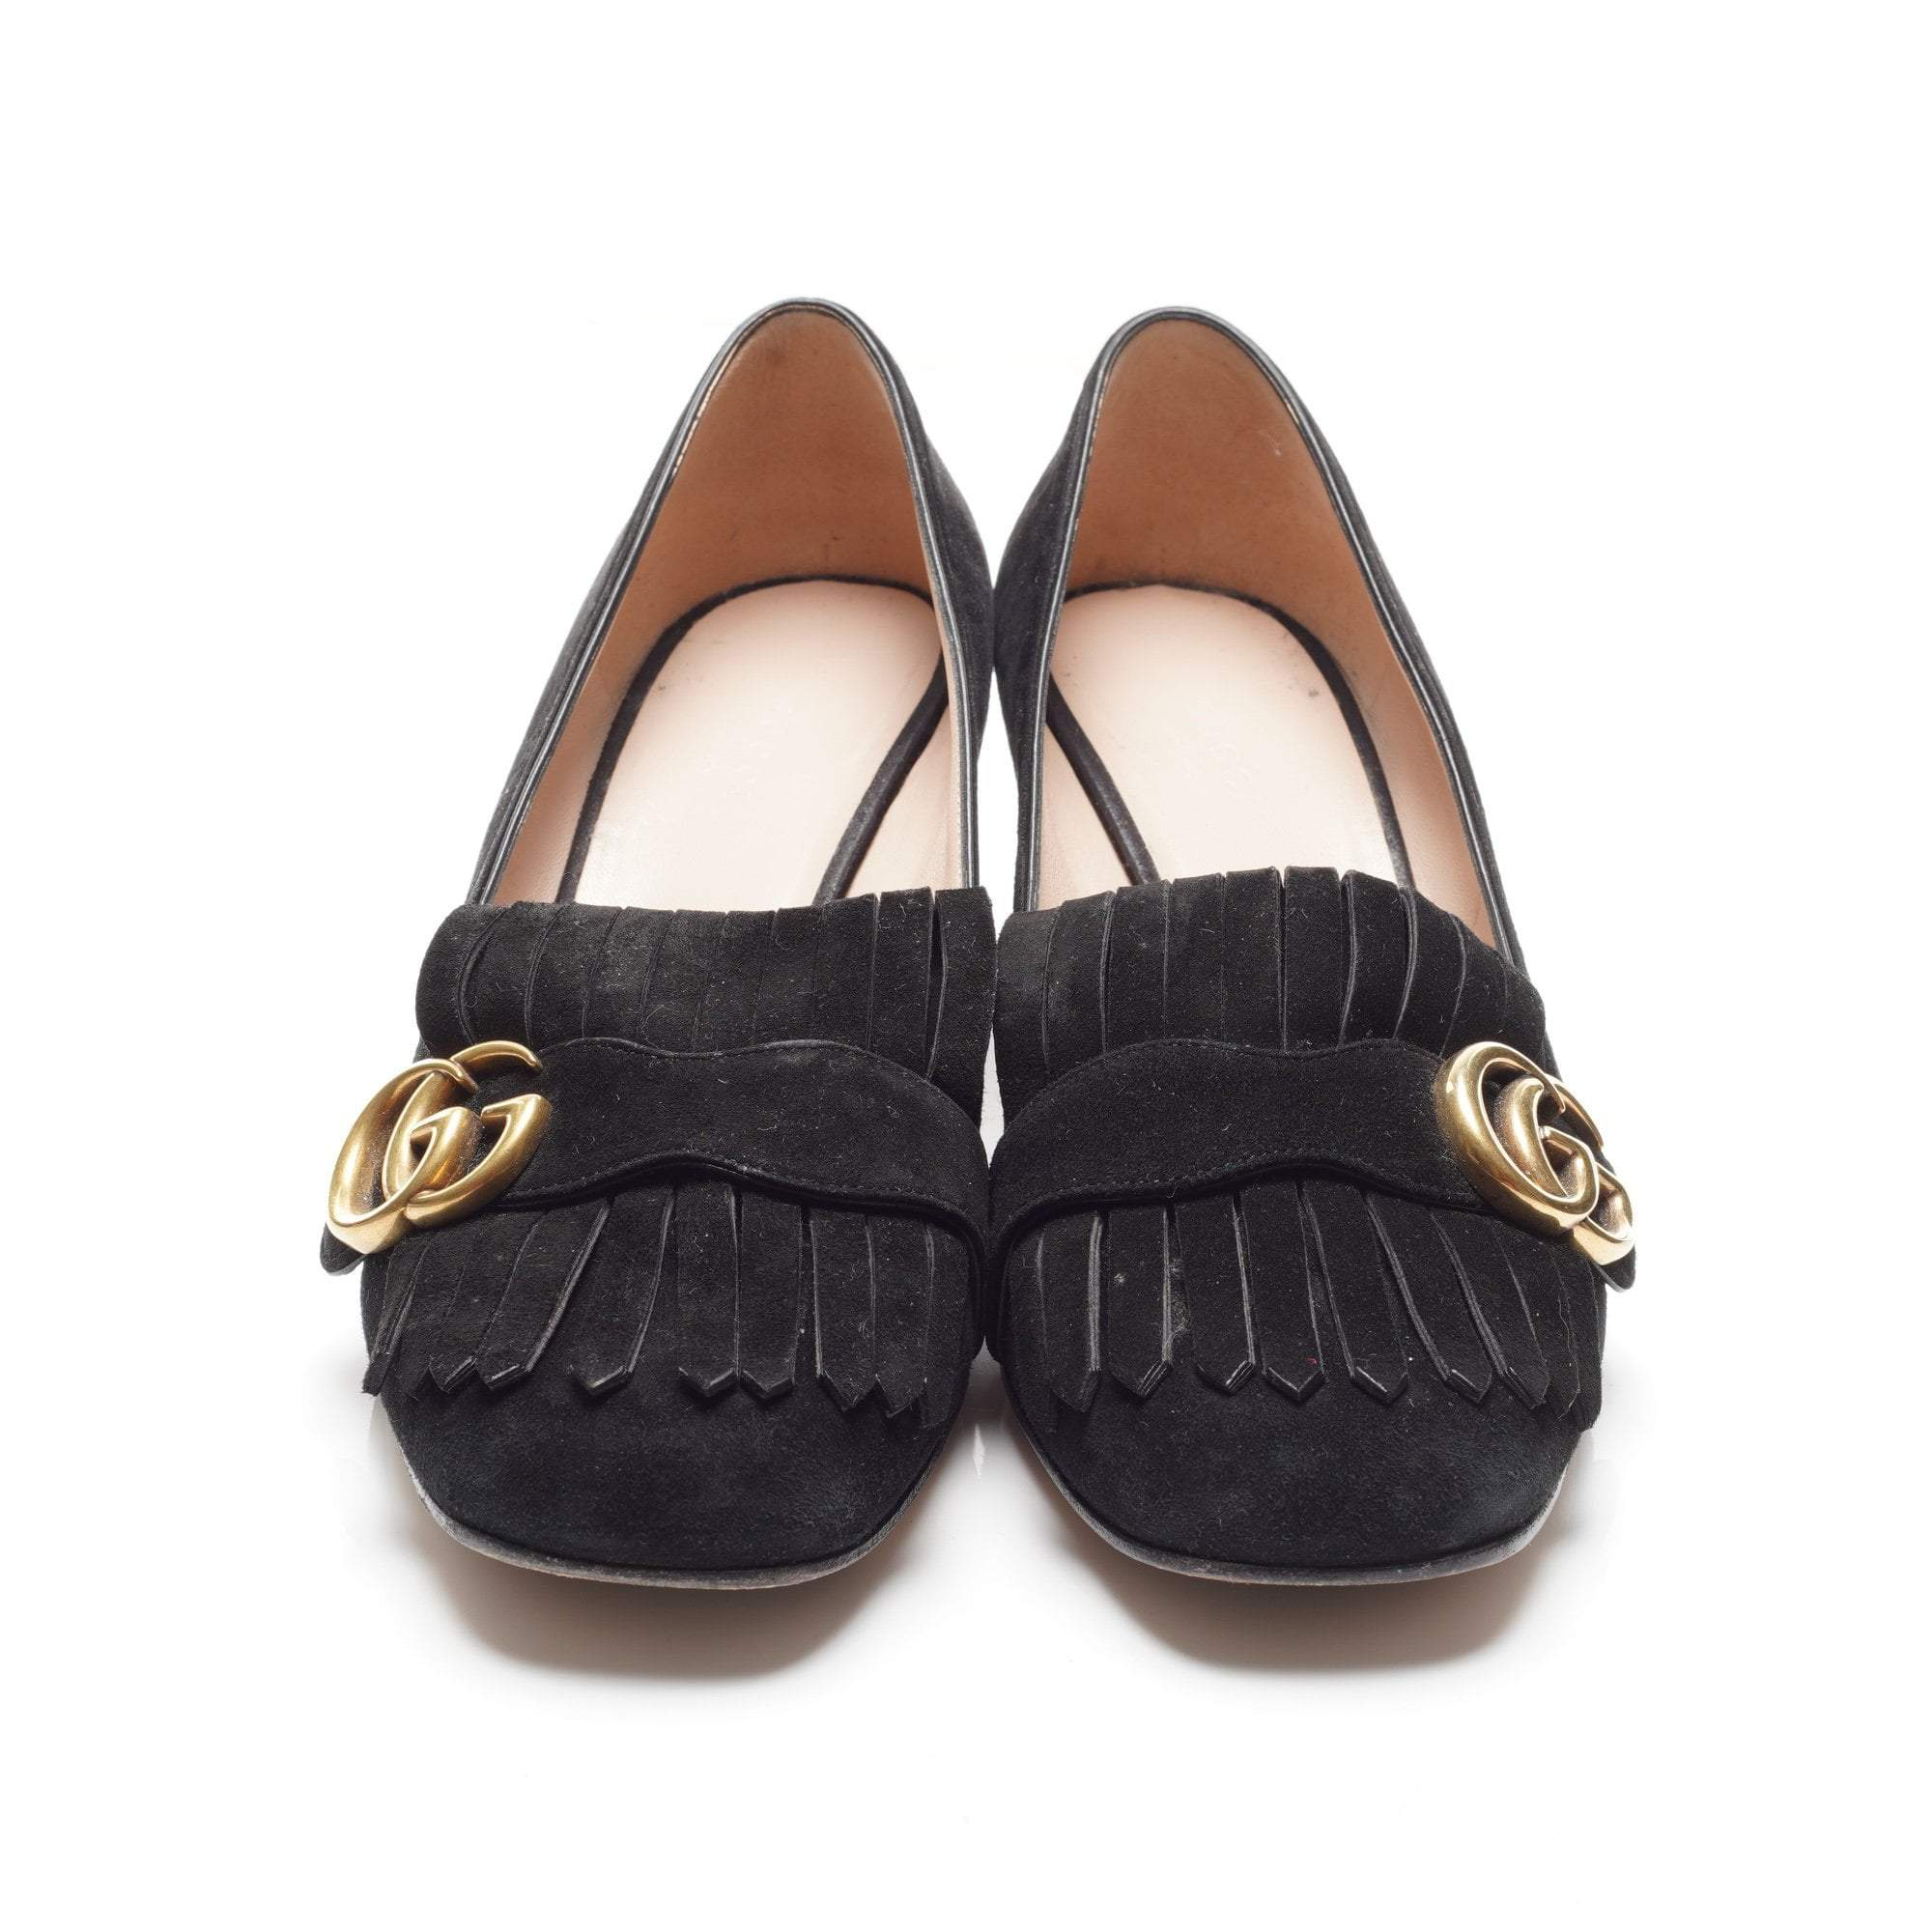 Gucci Suede Fringe Marmont Black Pumps